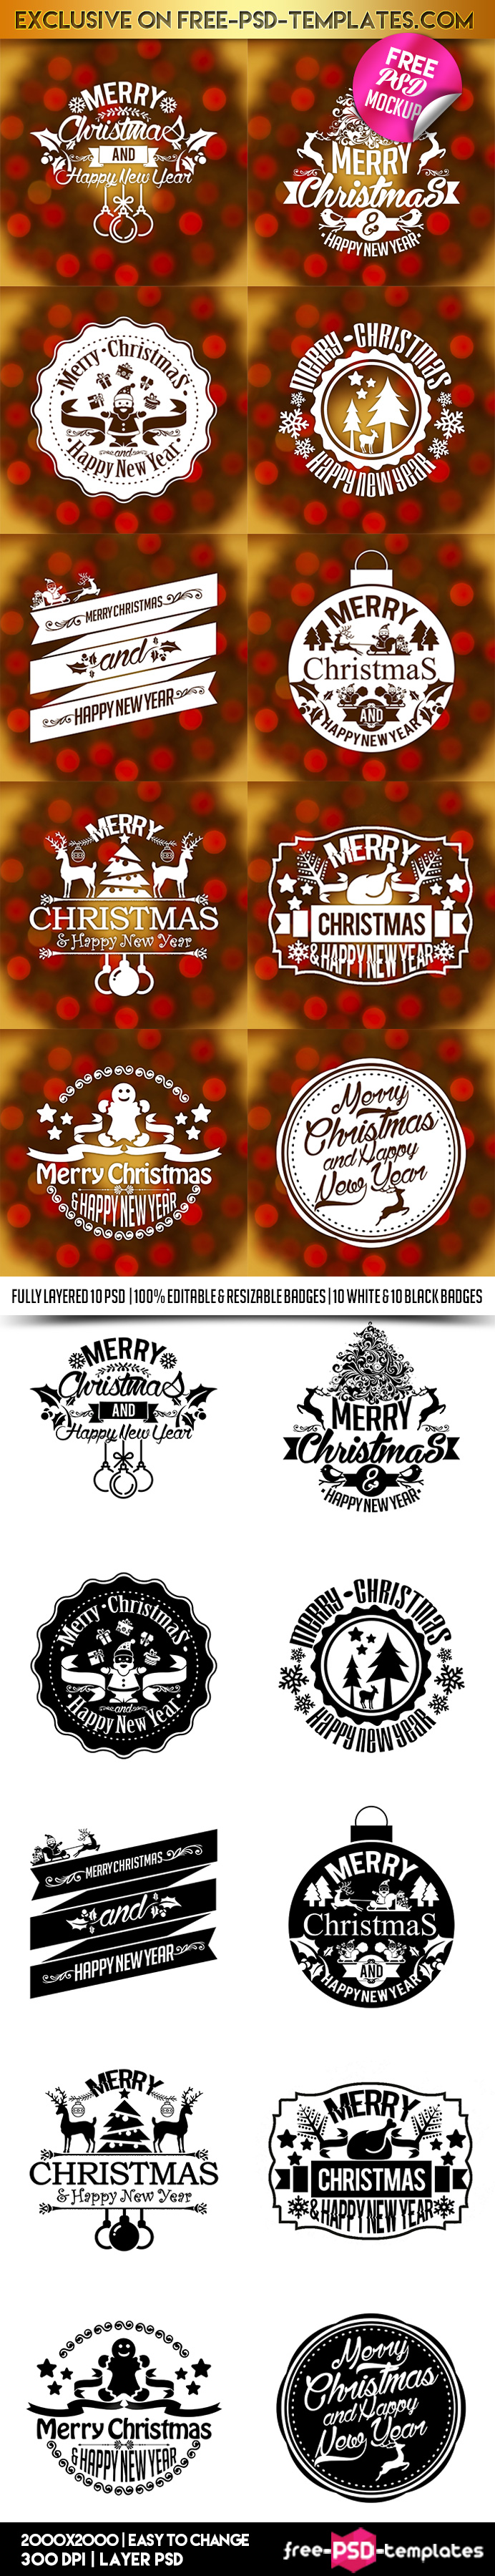 Preview_Christmas-&-New-Year-Badges-Sticker